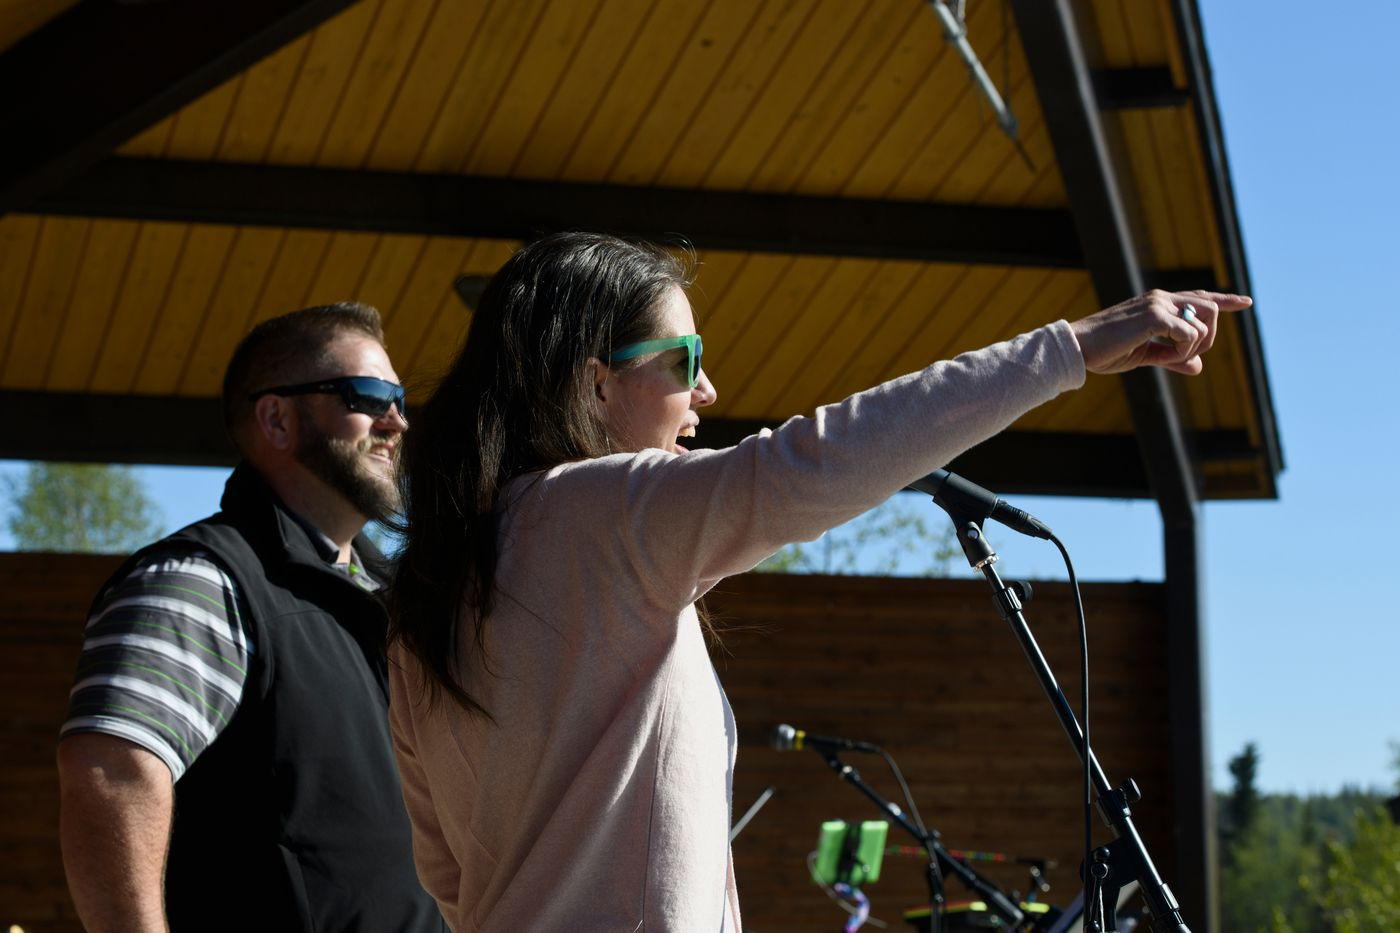 Anne Zink, Alaska's chief medical officer, speaks with the crowd at Sodotna's Party in the Park event at Soldotna Creek Park on May 26, 2021. She's joined by Alaska Department of Health and Social Services commissioner Adam Crum. (Marc Lester / ADN)